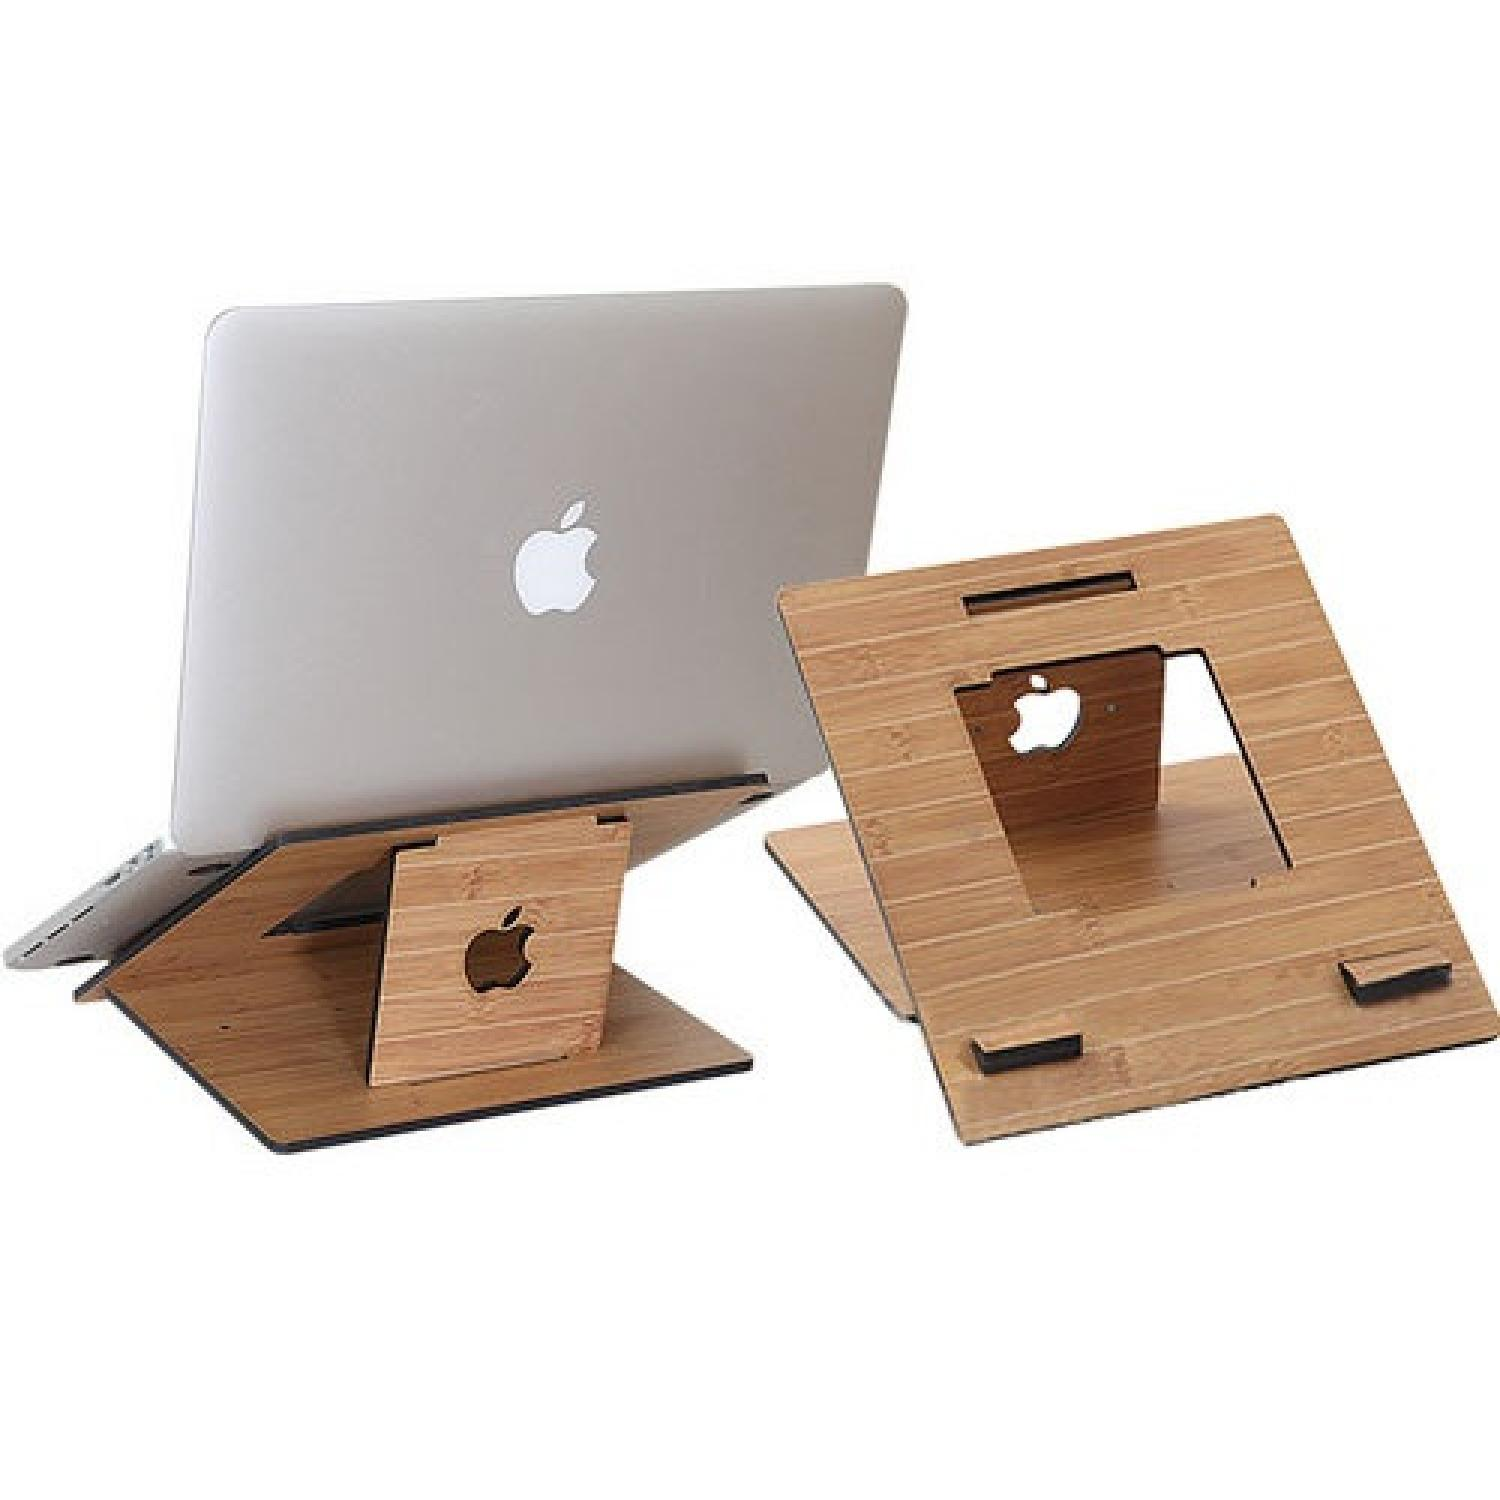 Fashion Wood Style Portable Laptop Stand